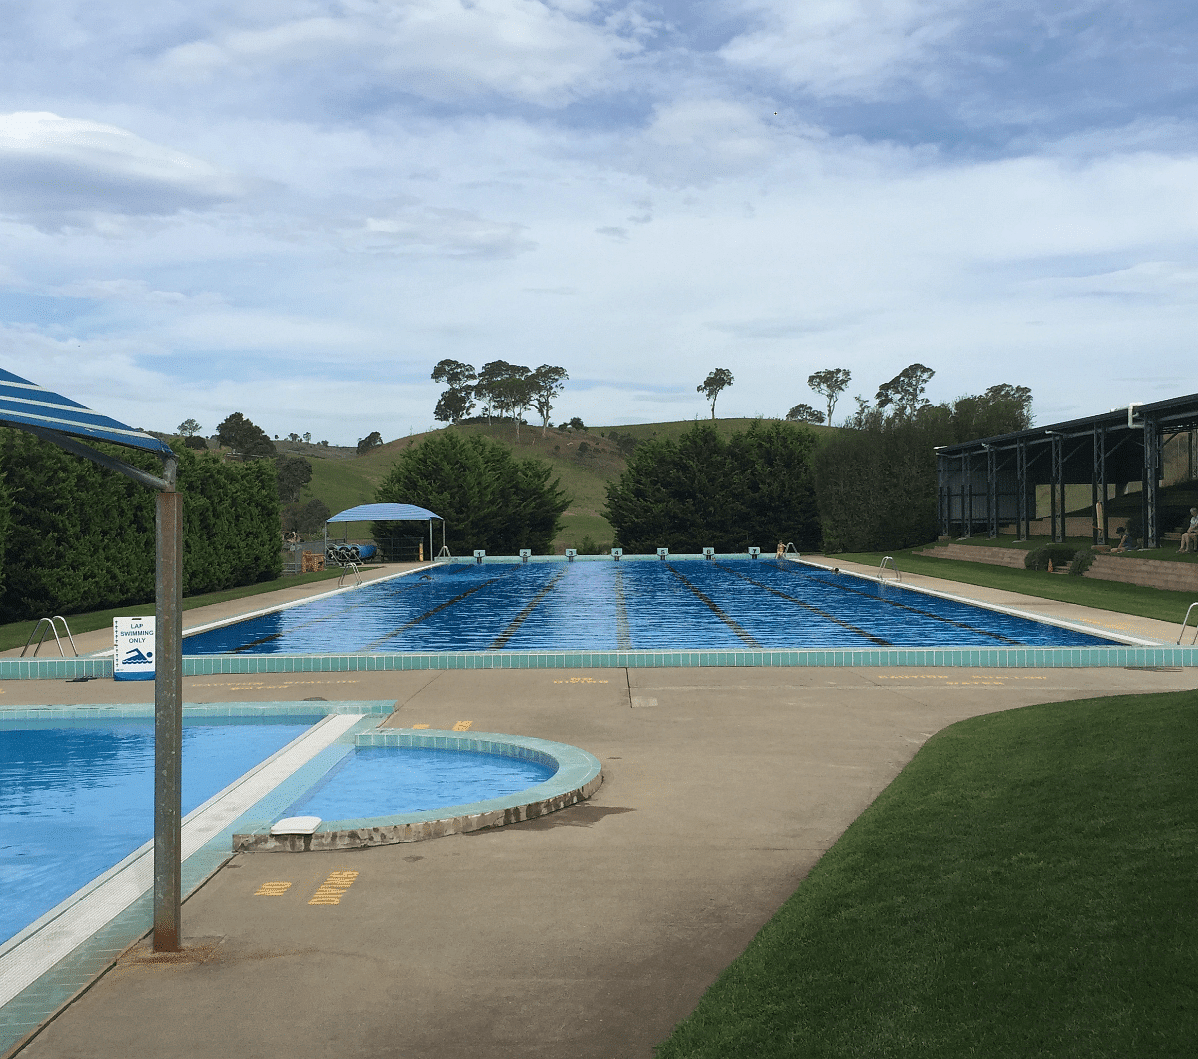 School swimming and water safety programs start next week